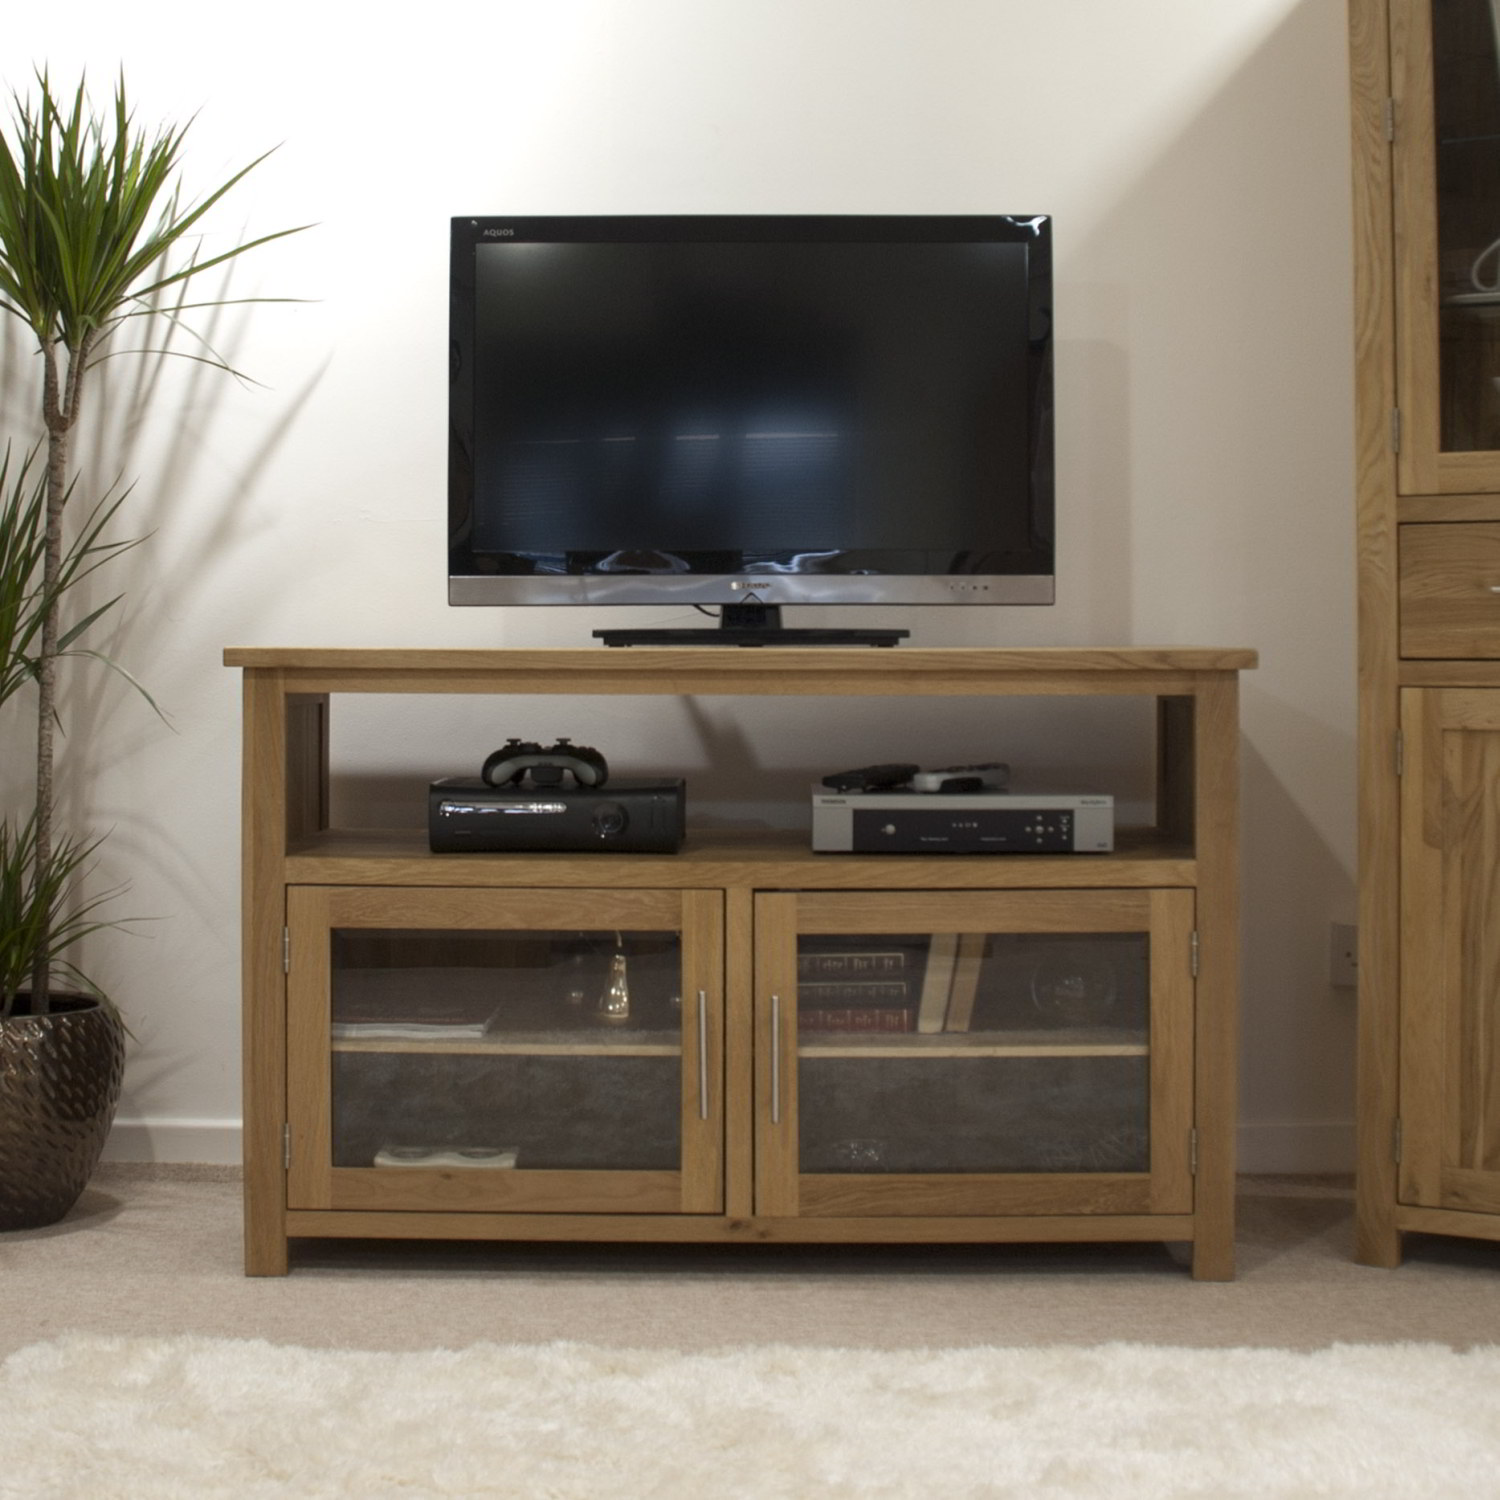 eton solid oak living room furniture tv cabinet stand entertainment